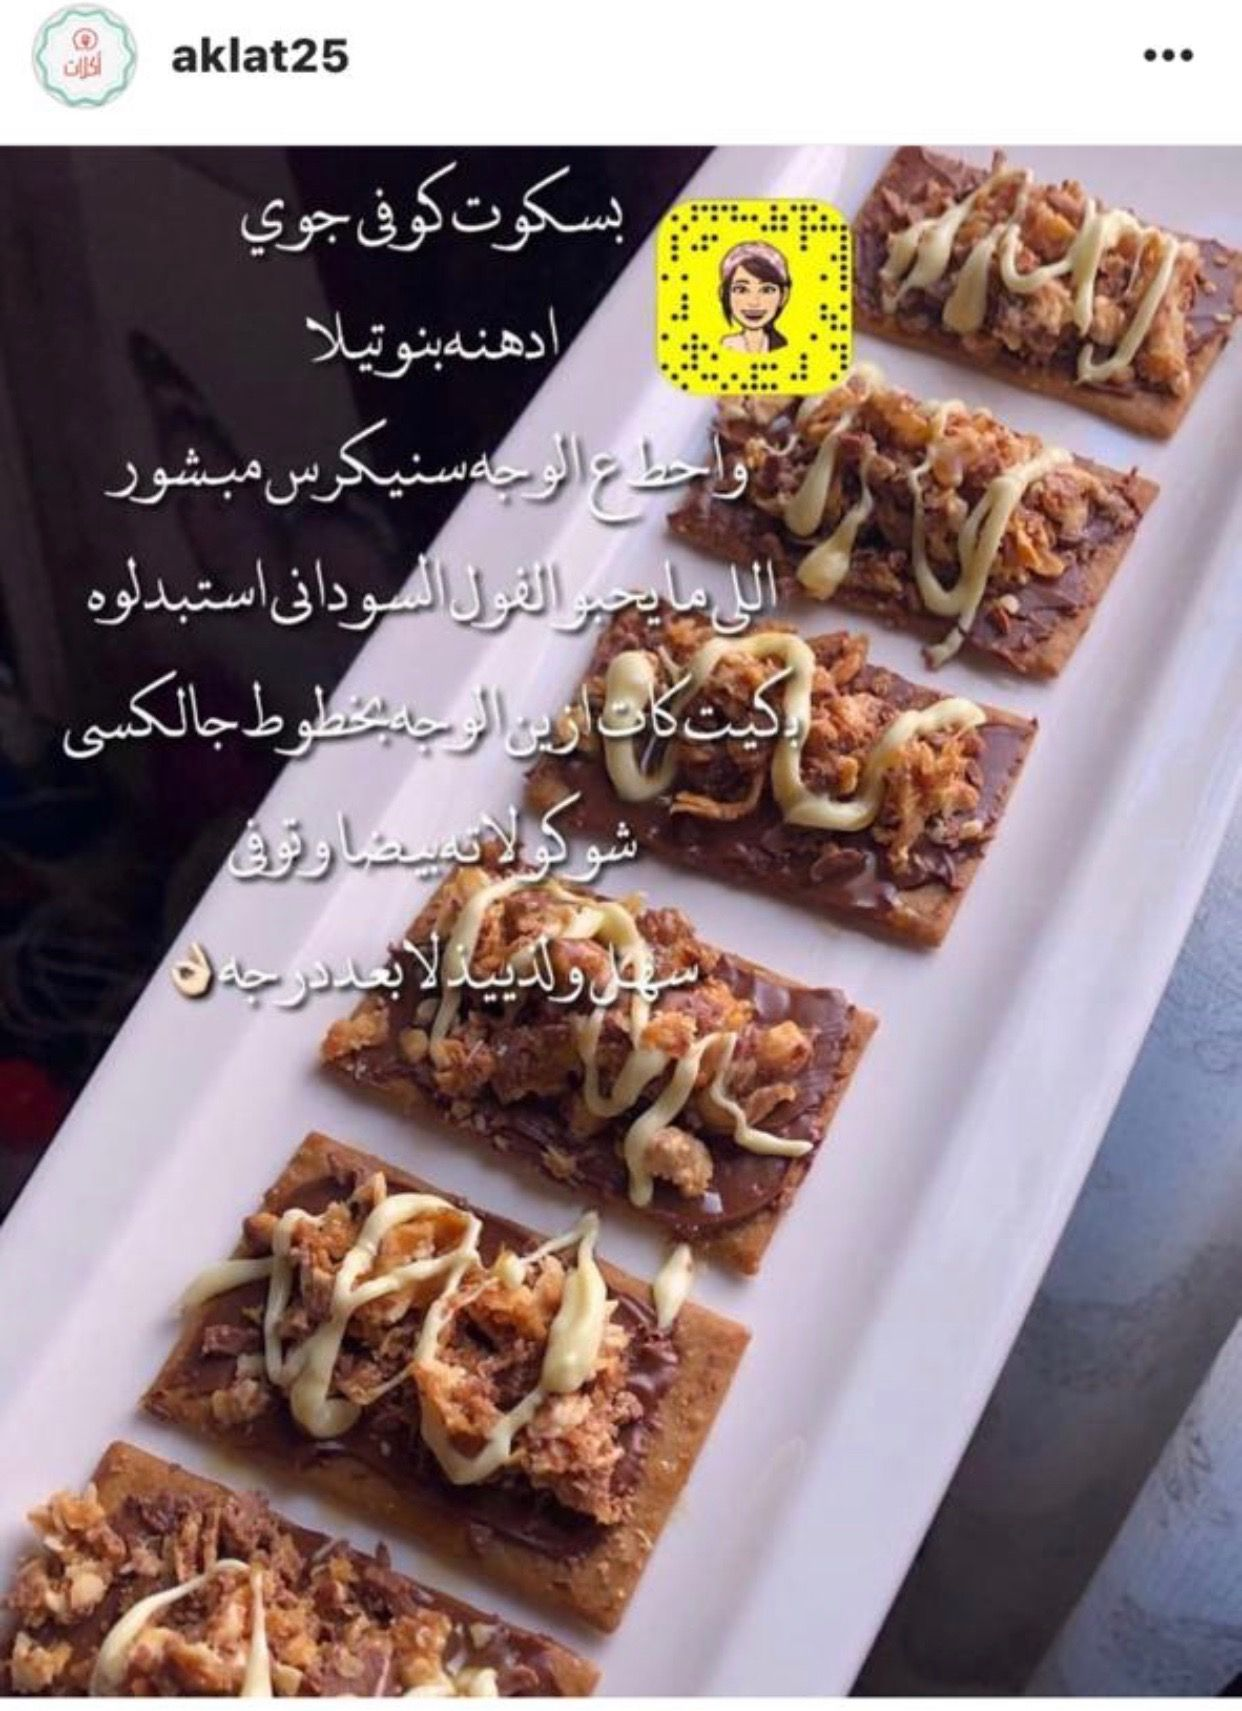 Pin By Hayam Elzwi On My Recipes Yummy Food Dessert Sweets Recipes Cooking Recipes Desserts